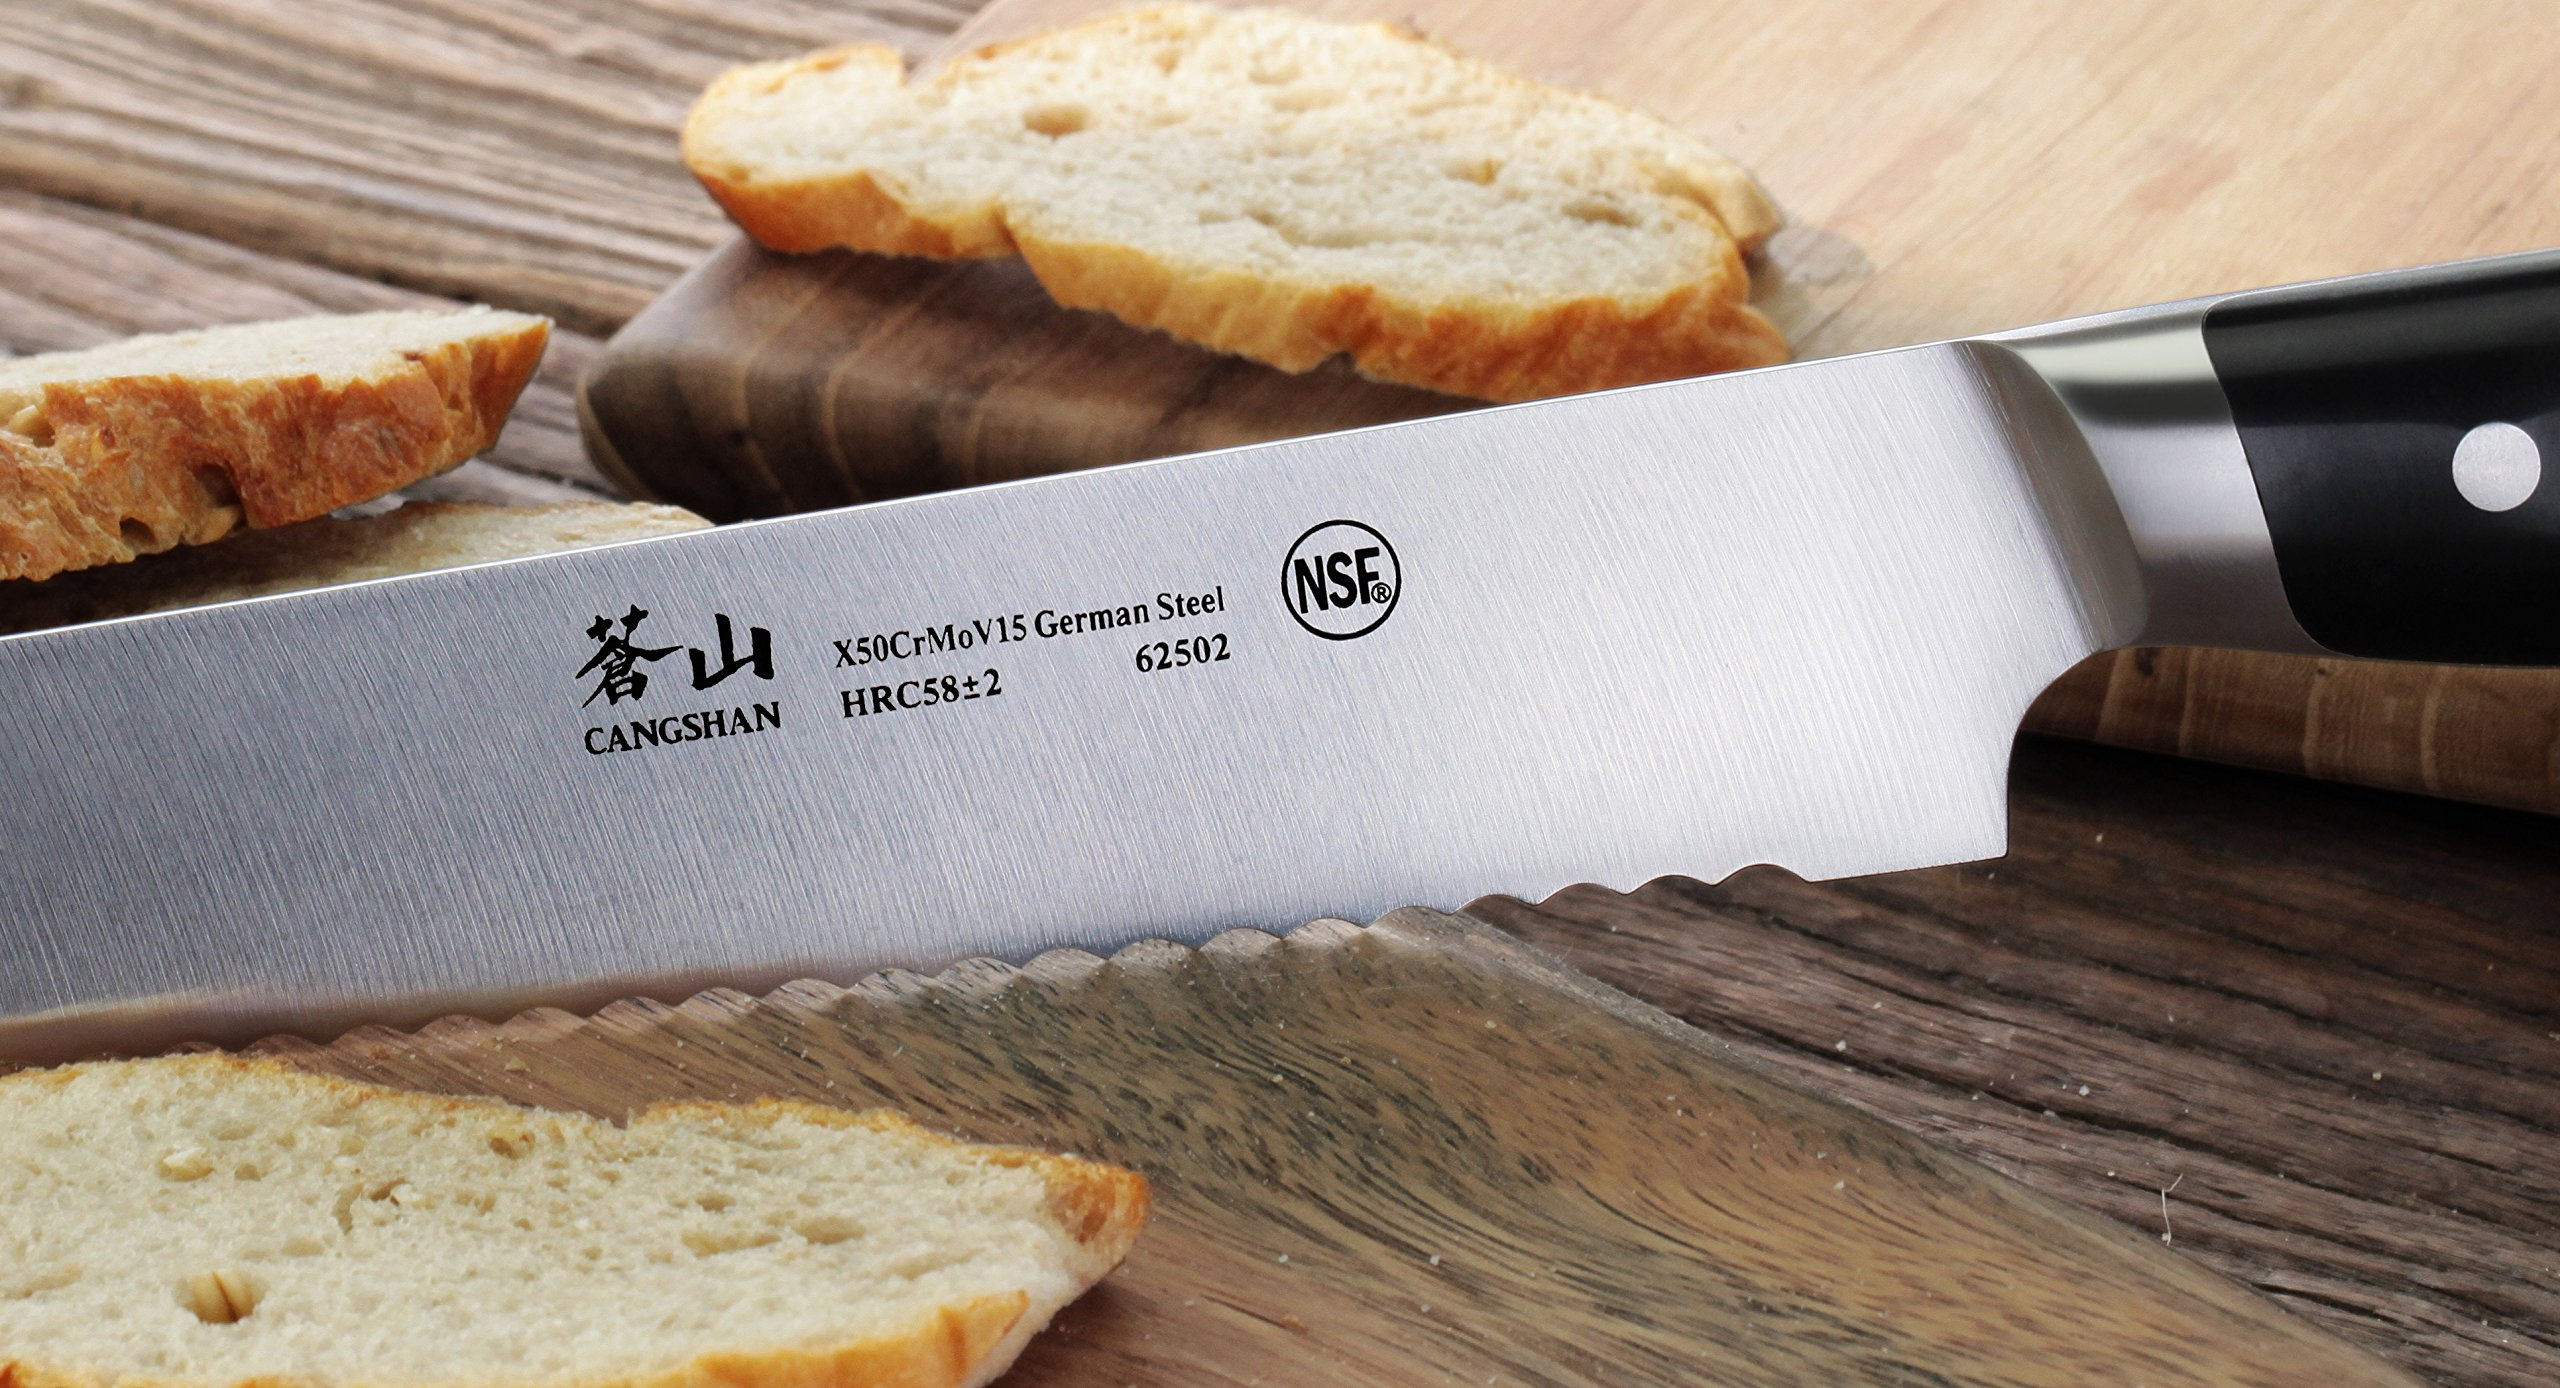 Cangshan Z Series 62502 German Steel Forged Bread Knife, 10.25-Inch by Cangshan (Image #6)